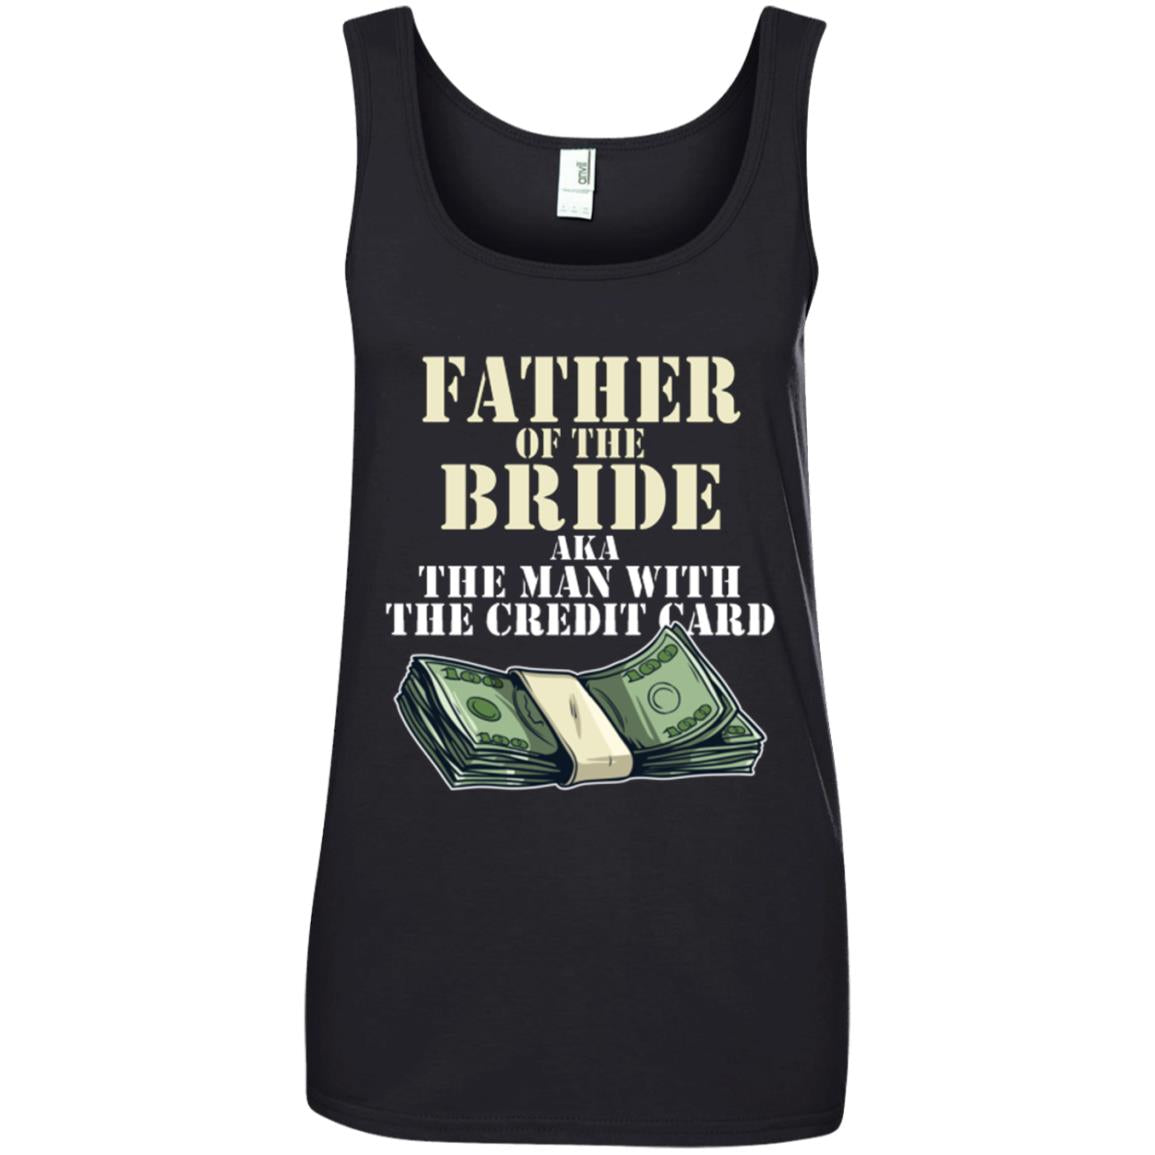 Father Of The Bride AKA The Man With The Credit Card Ladies Tank Top